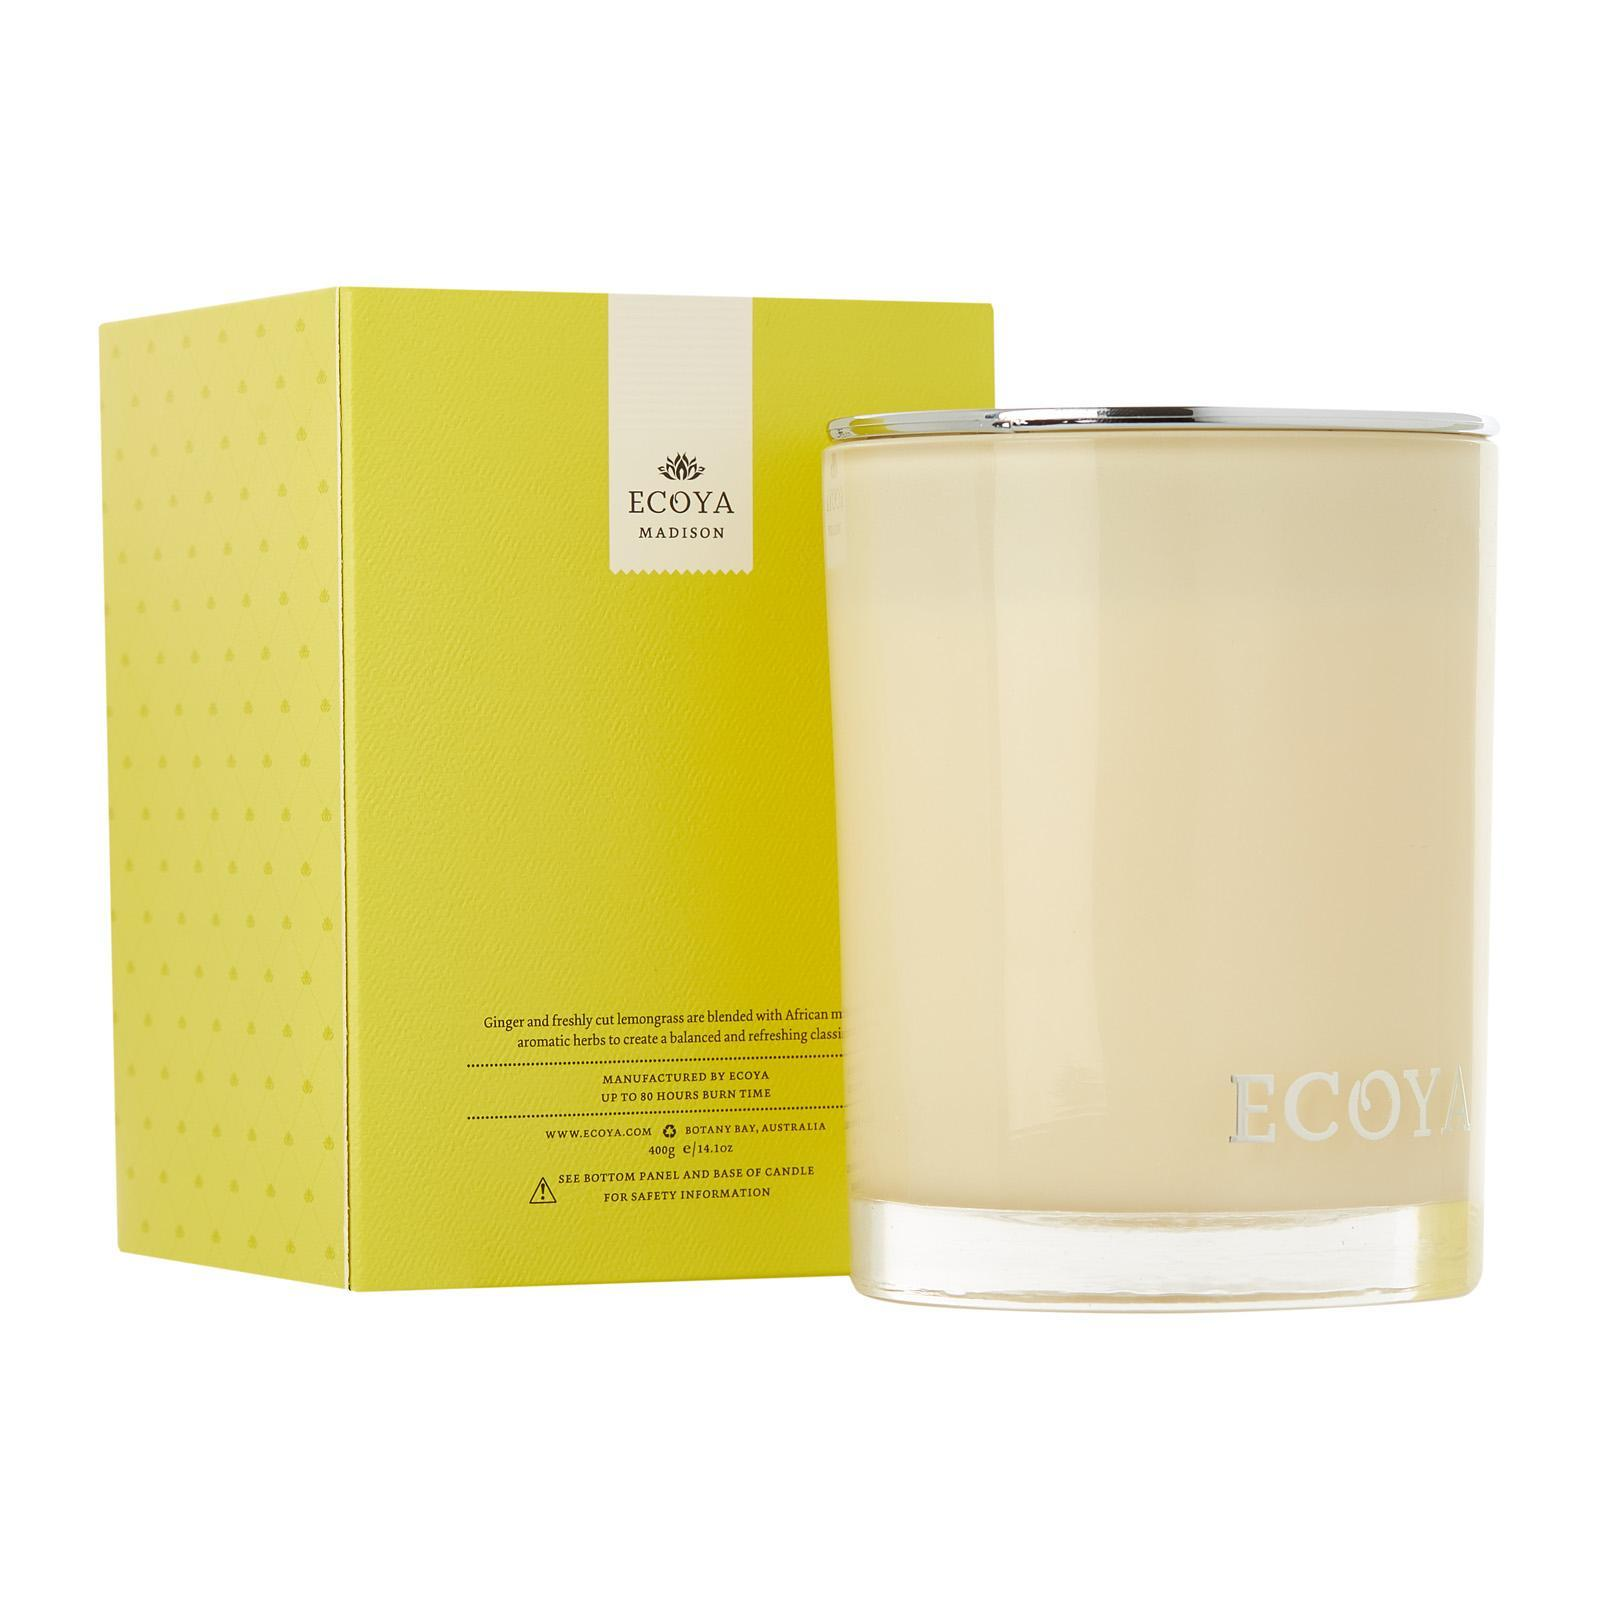 ECOYA Lemongrass And Ginger Madison Jar Candle